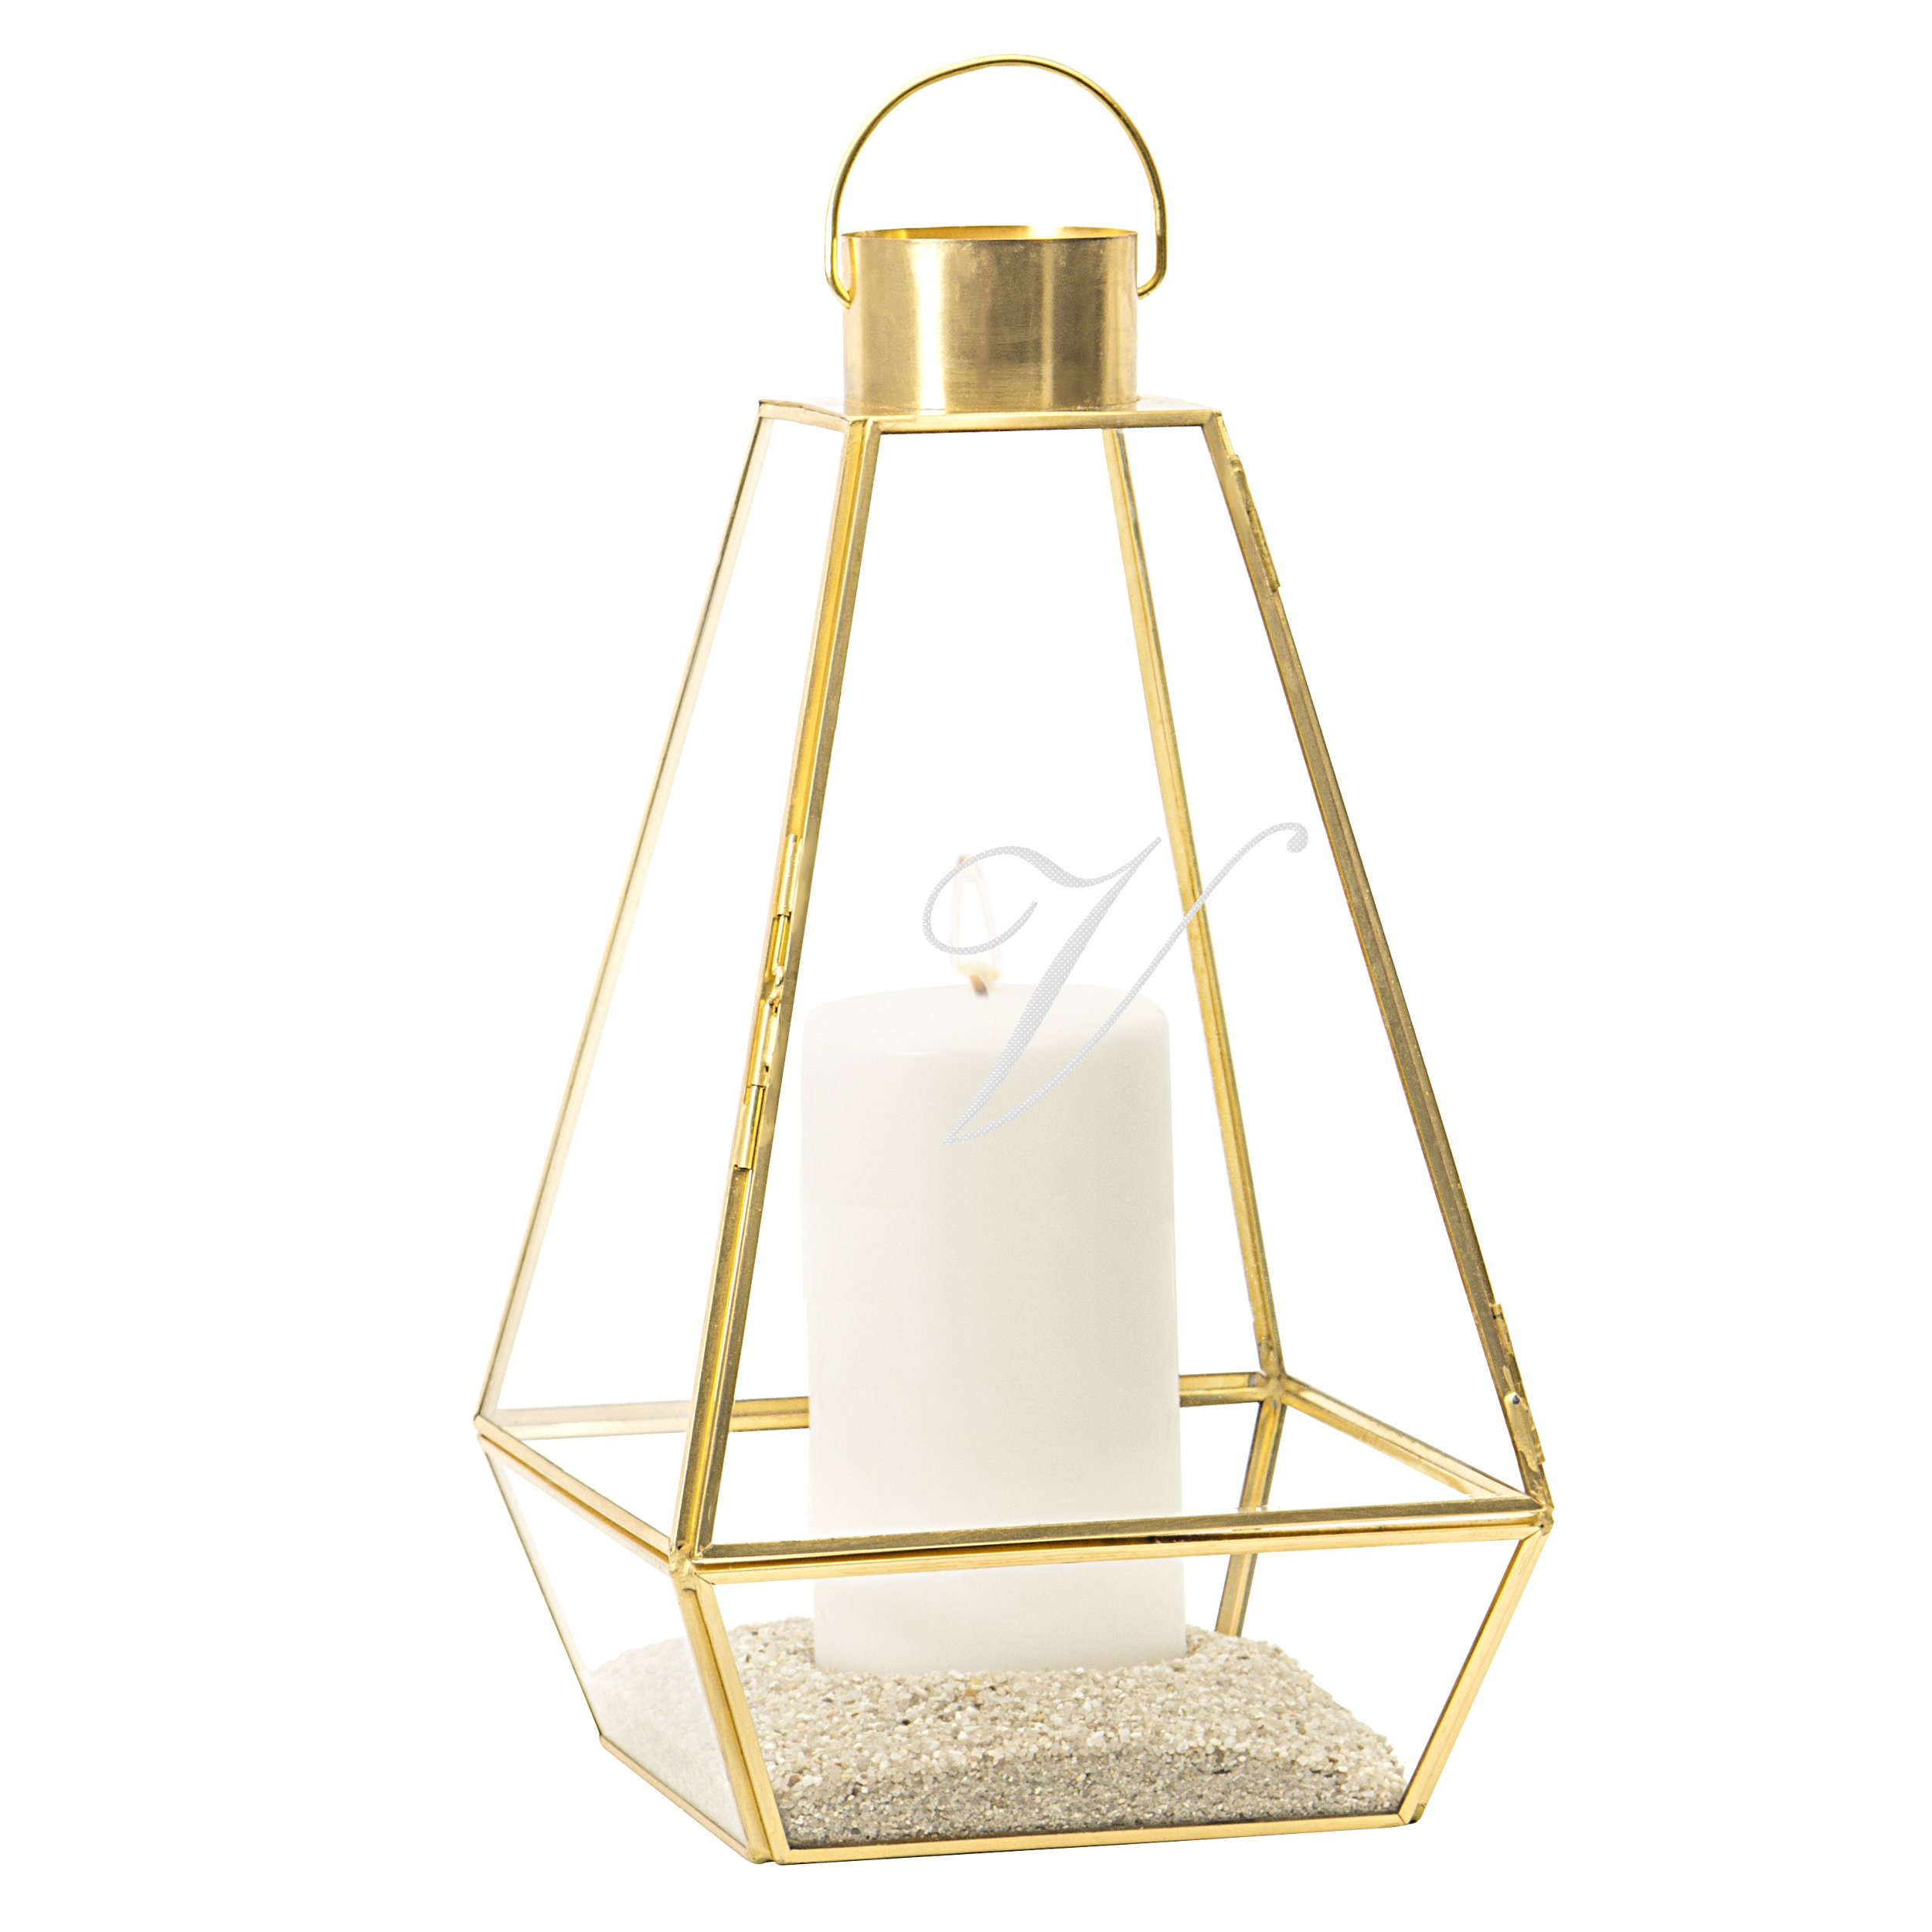 Cathy's Concepts Personalized Gold Metal Wedding Unity Lantern